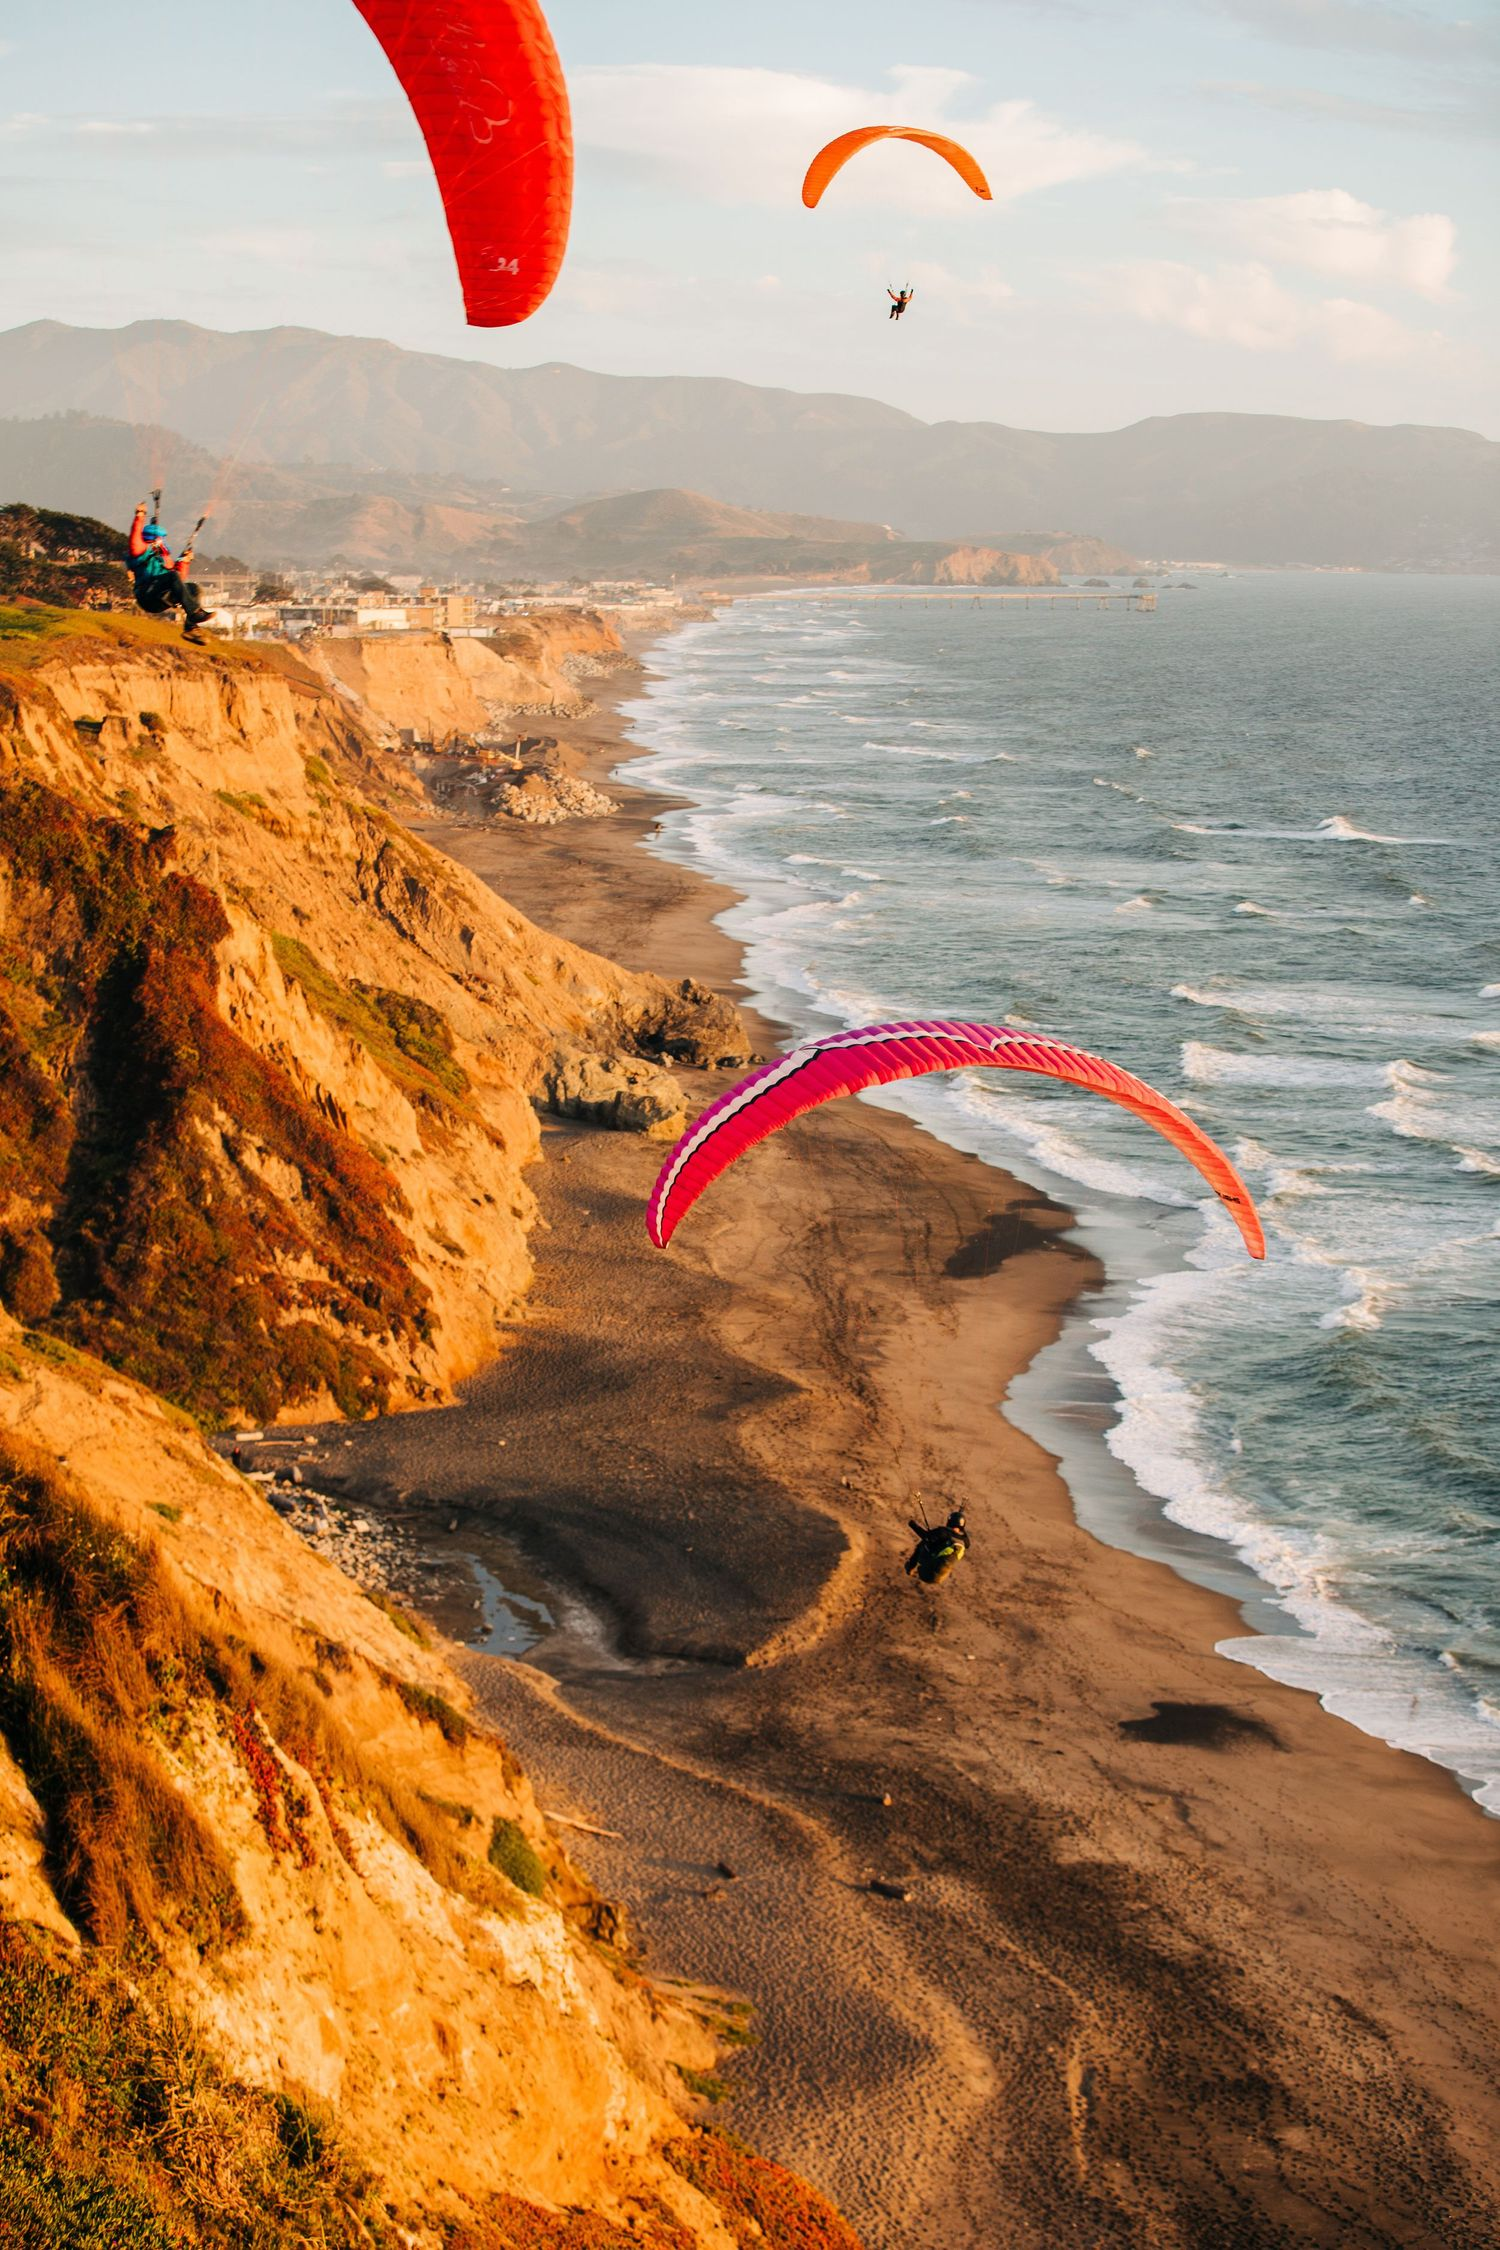 Paragliders travel across the sky over a beautiful beach view in Northern California.